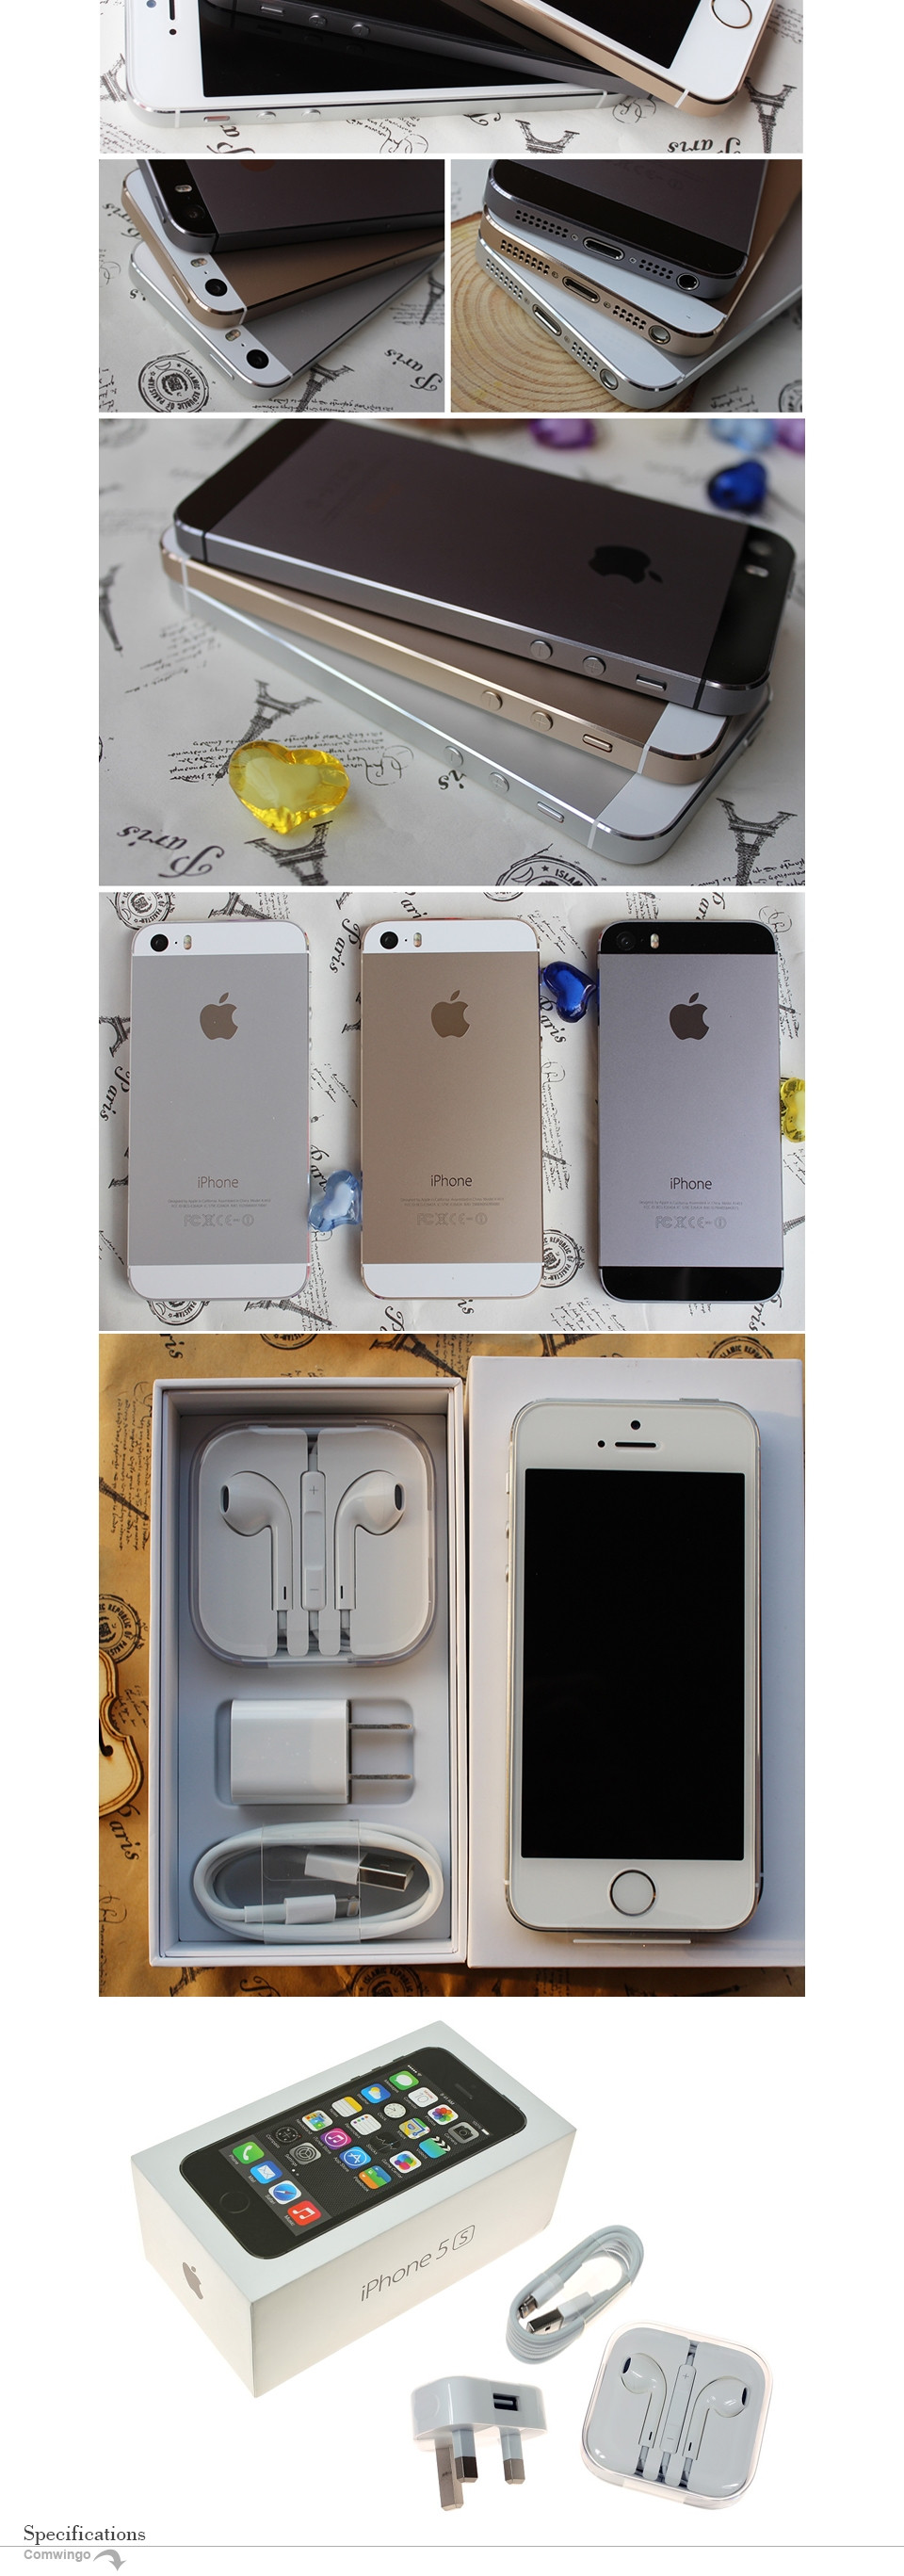 Фото Оригинальный Apple iphone 5s 16GB / 32GB ROM IOS White Black GPS GPRS A7 IPS LTE восстановленный